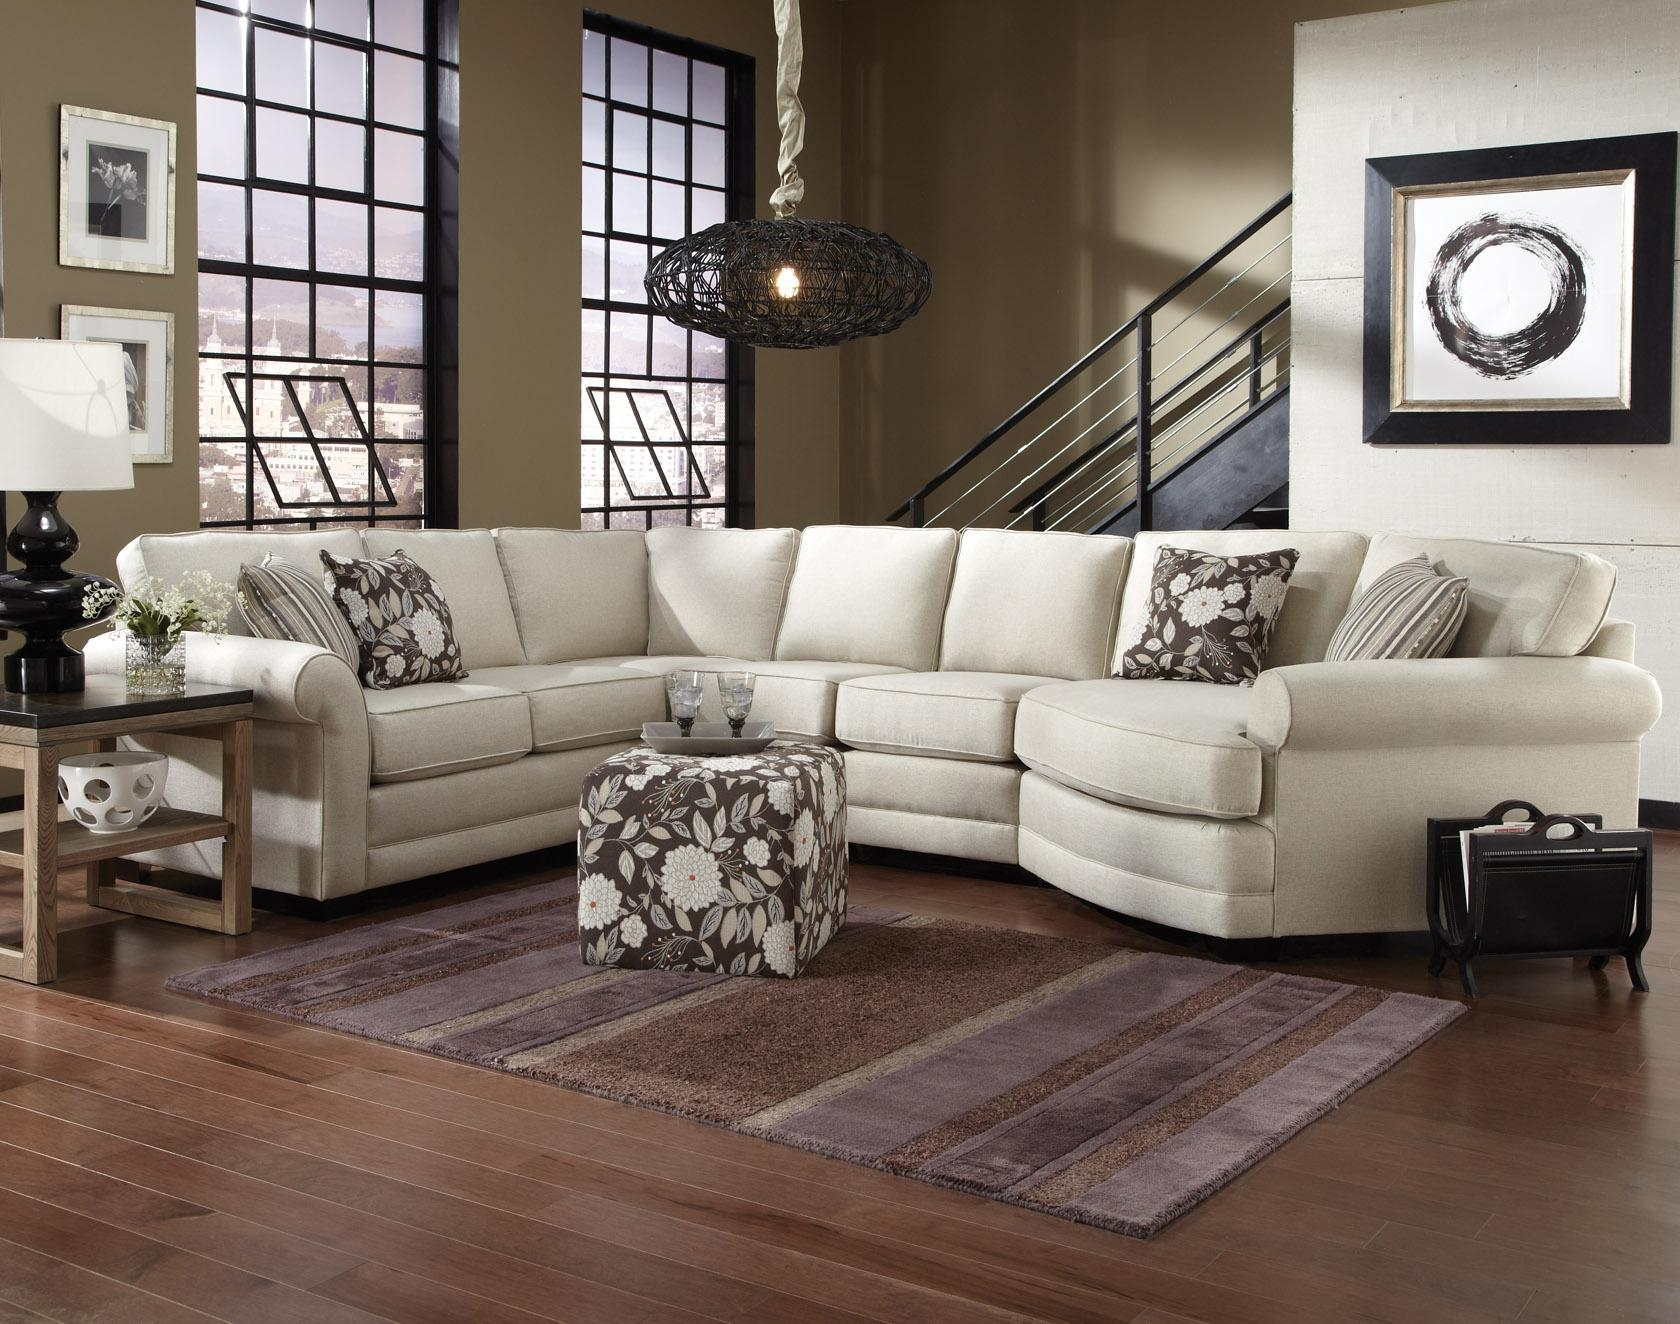 England Brantley 5 Seat Sectional Sofa With Cuddler – Dunk With Regard To Sectional Sofa With Cuddler Chaise (View 4 of 20)